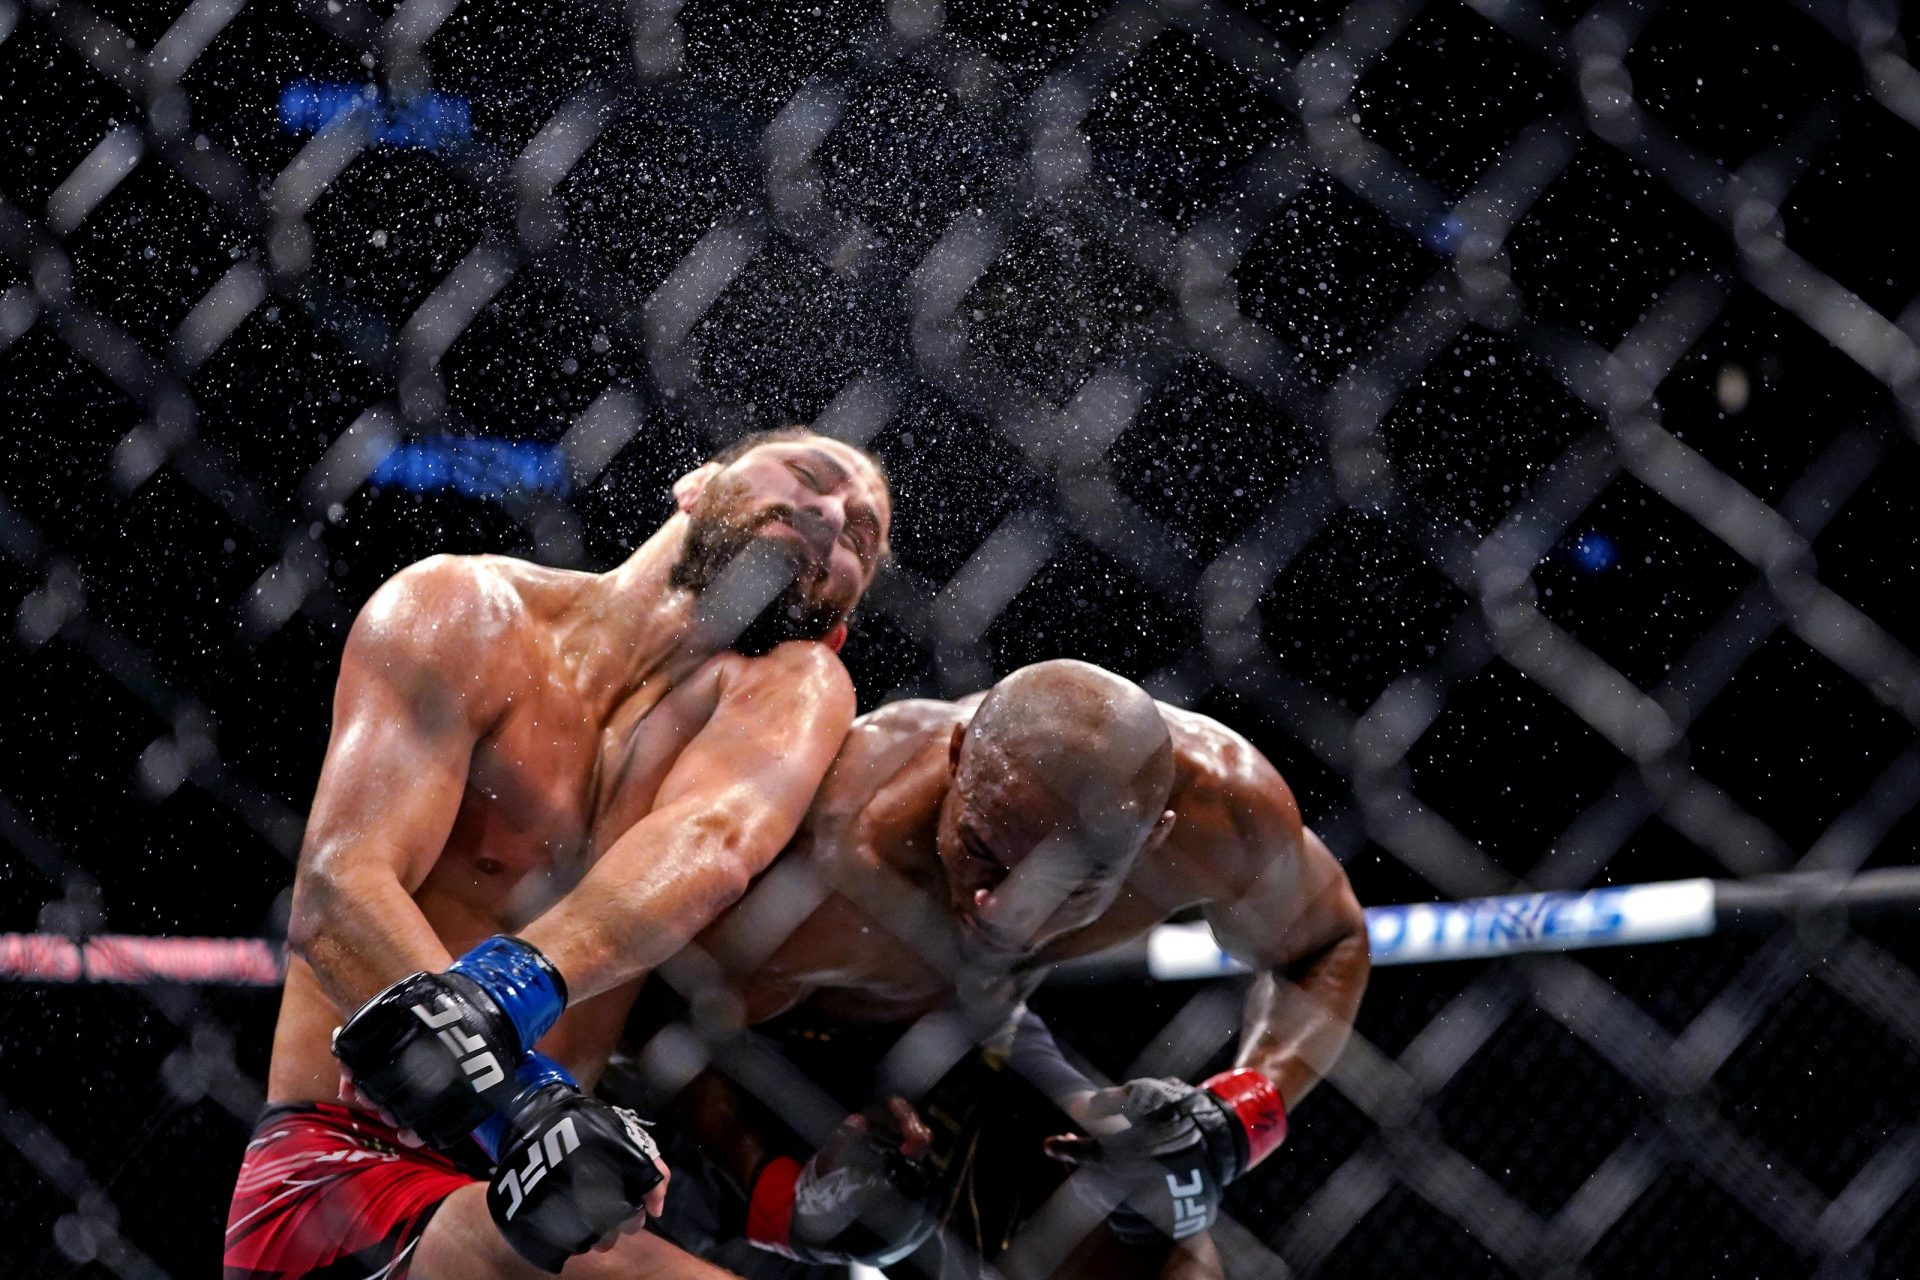 UFC 261 sells 700,000 Pay-Per-View Buys - UFC